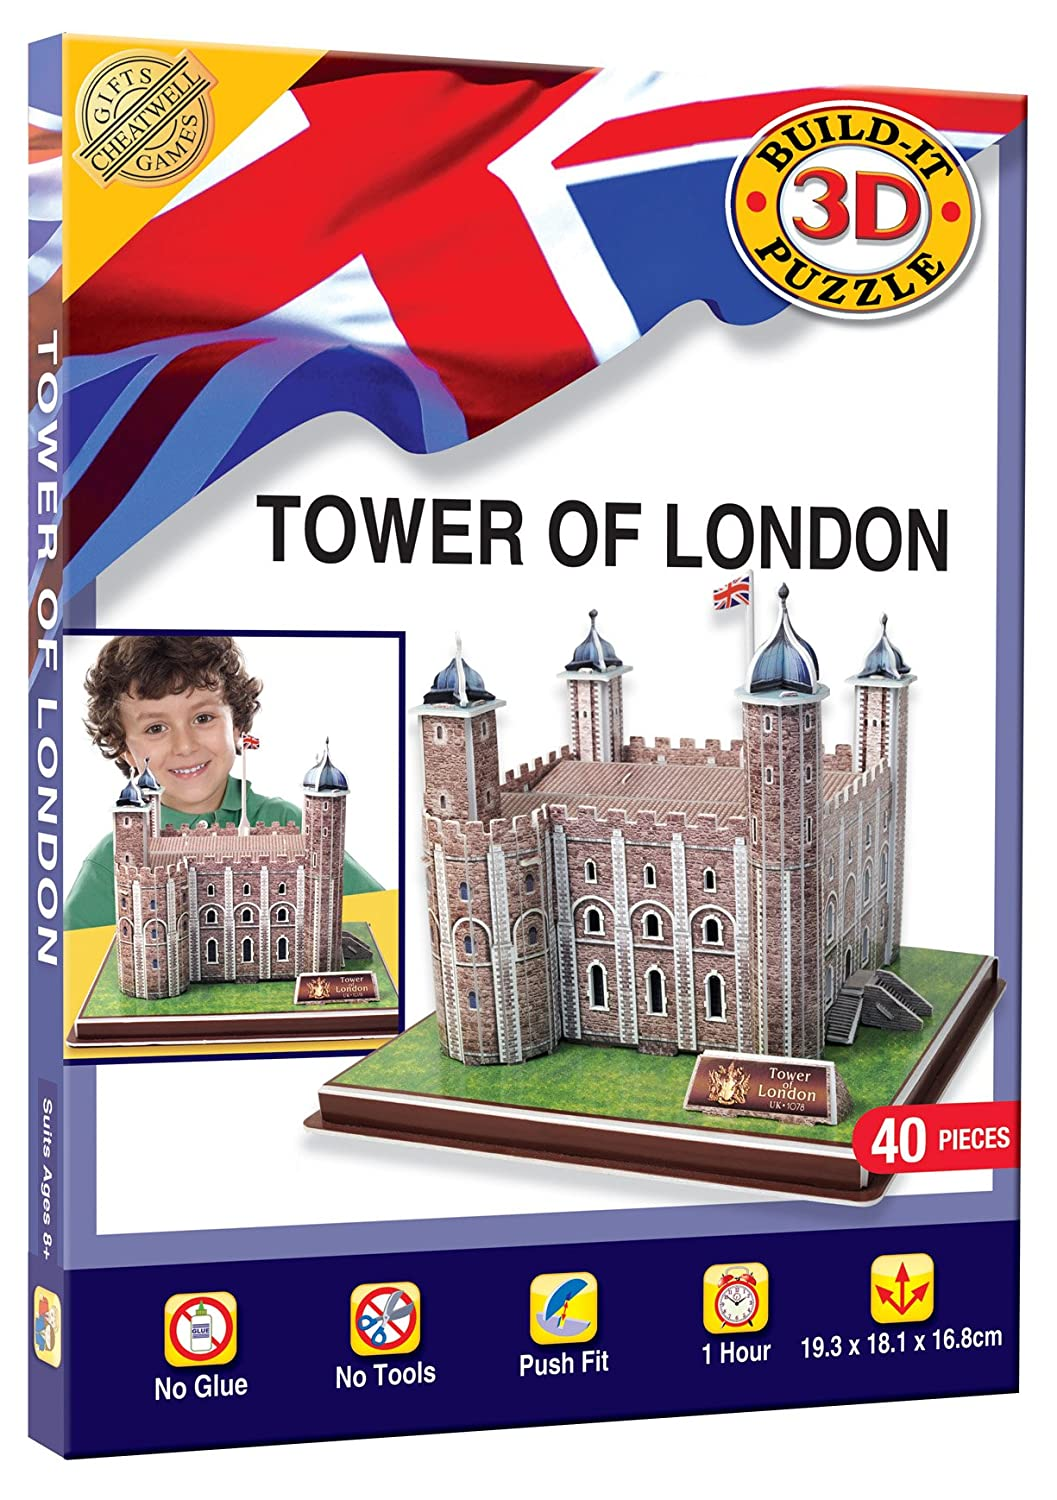 3D TOWER OF LONDON 2262 By Best Price Square